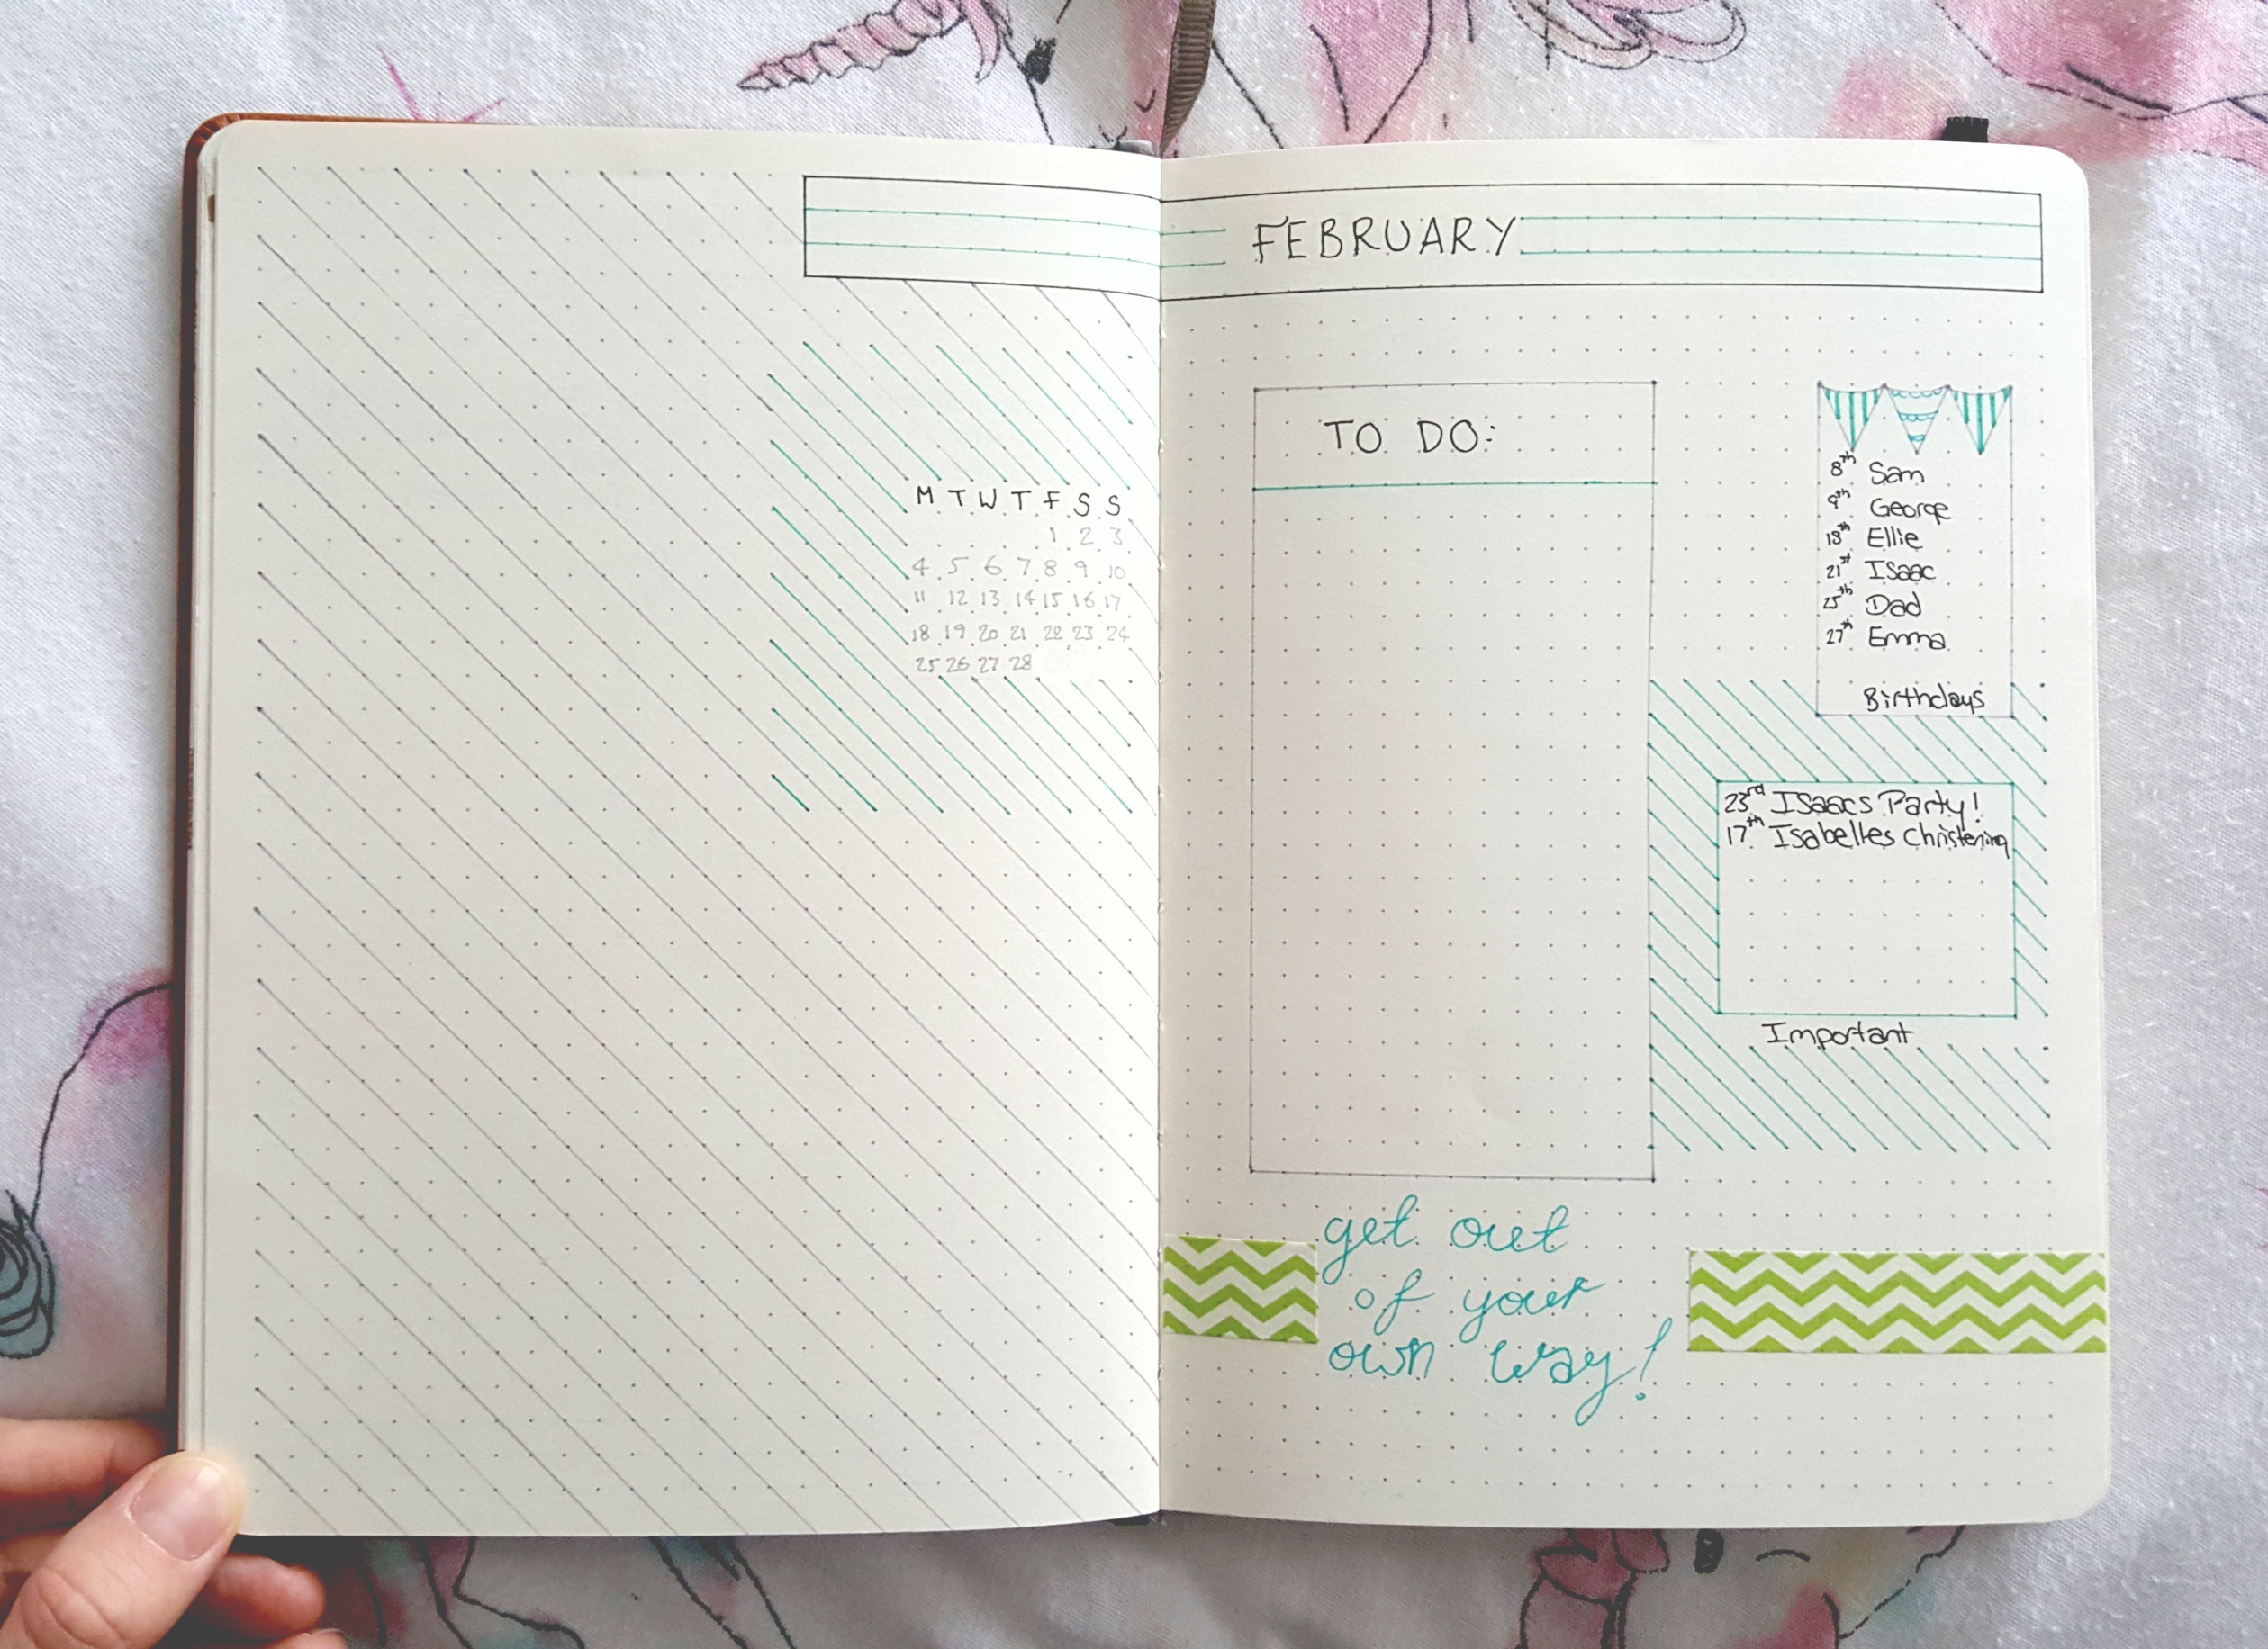 https://talilifestyle.com/2019/02/06/bullet-journal-february/